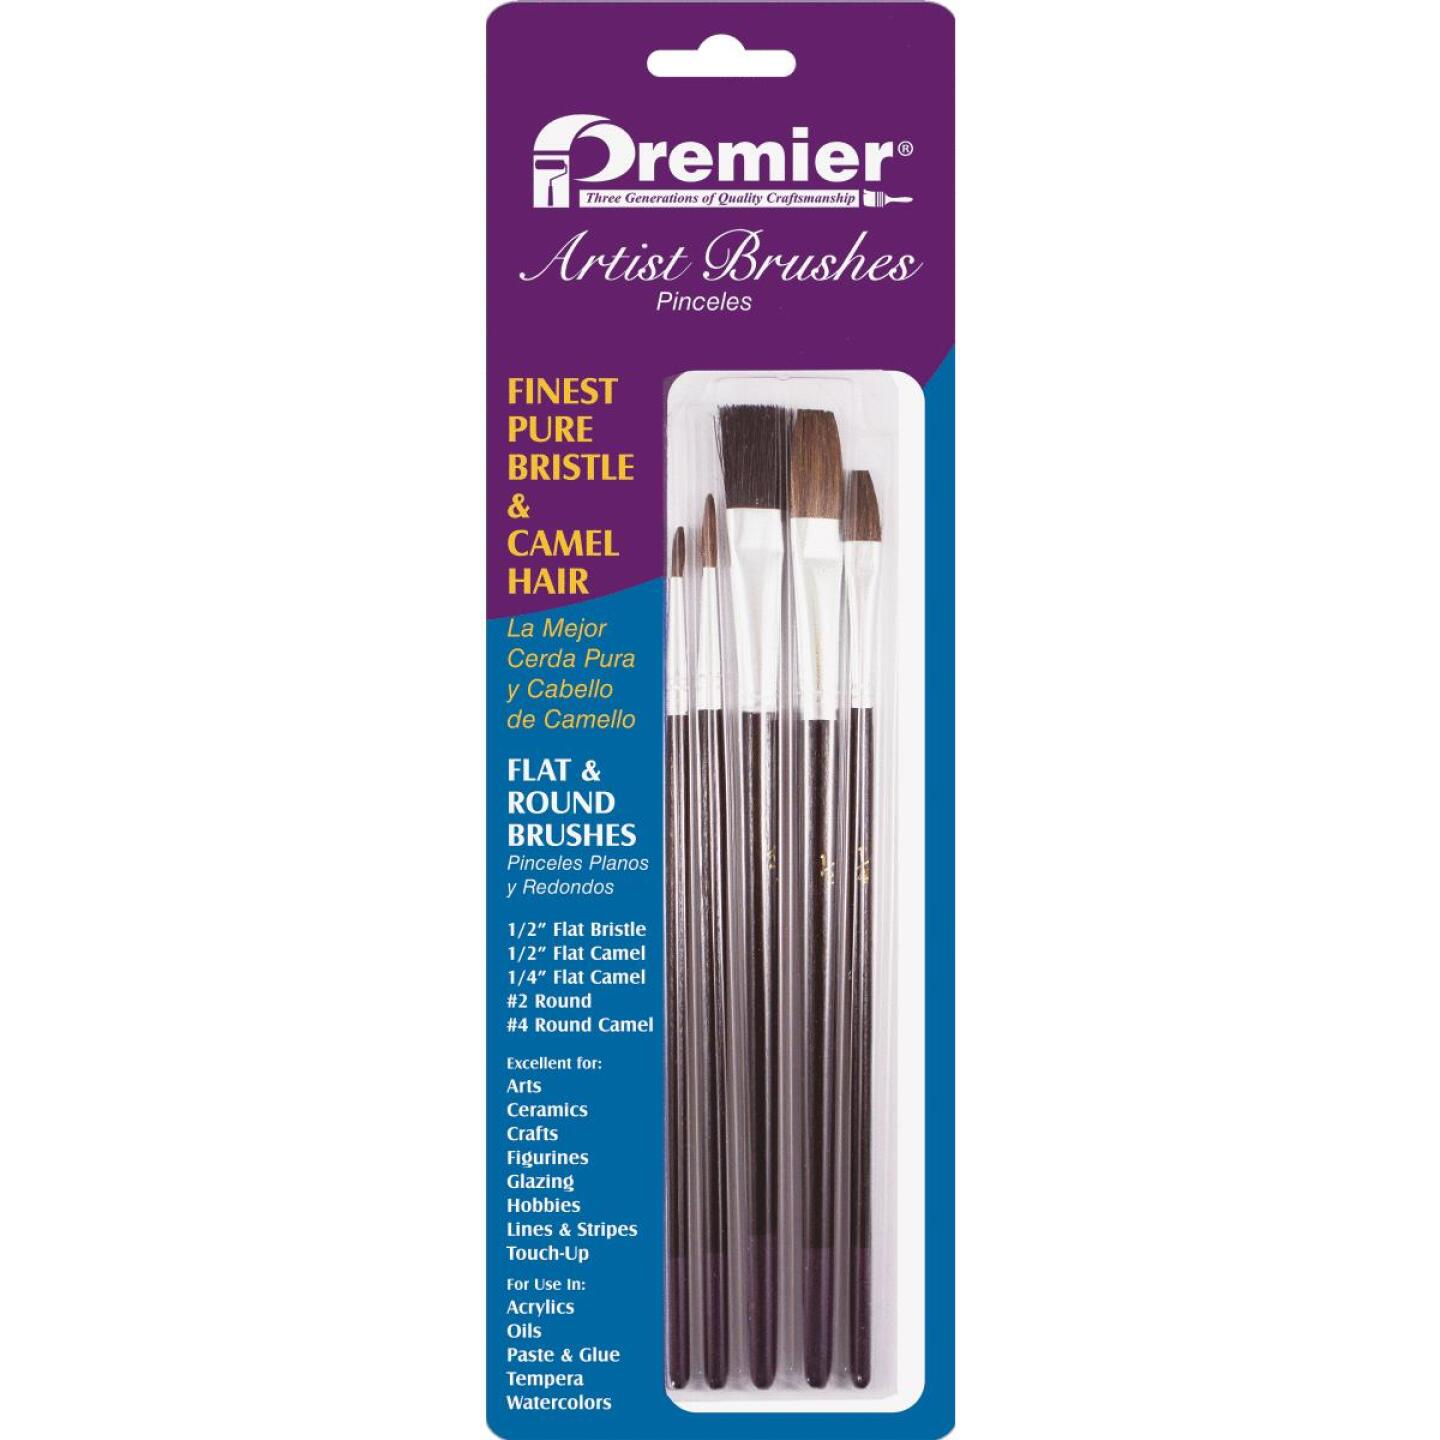 Premier Assorted Bristle & Camel Hair Artist Brushes (5-Pieces) Image 1